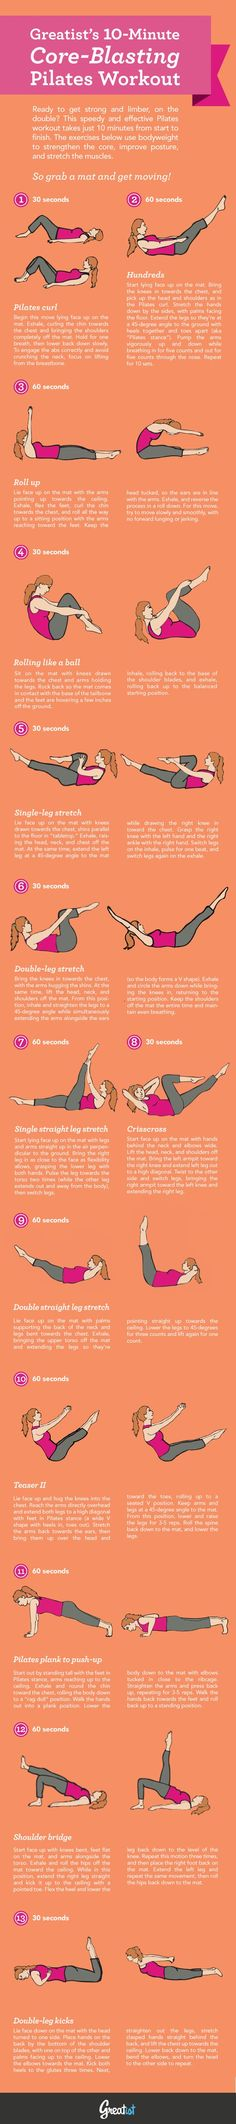 Core-Blasting Pilates Workout via @Greatist #fitness #exercise #abs